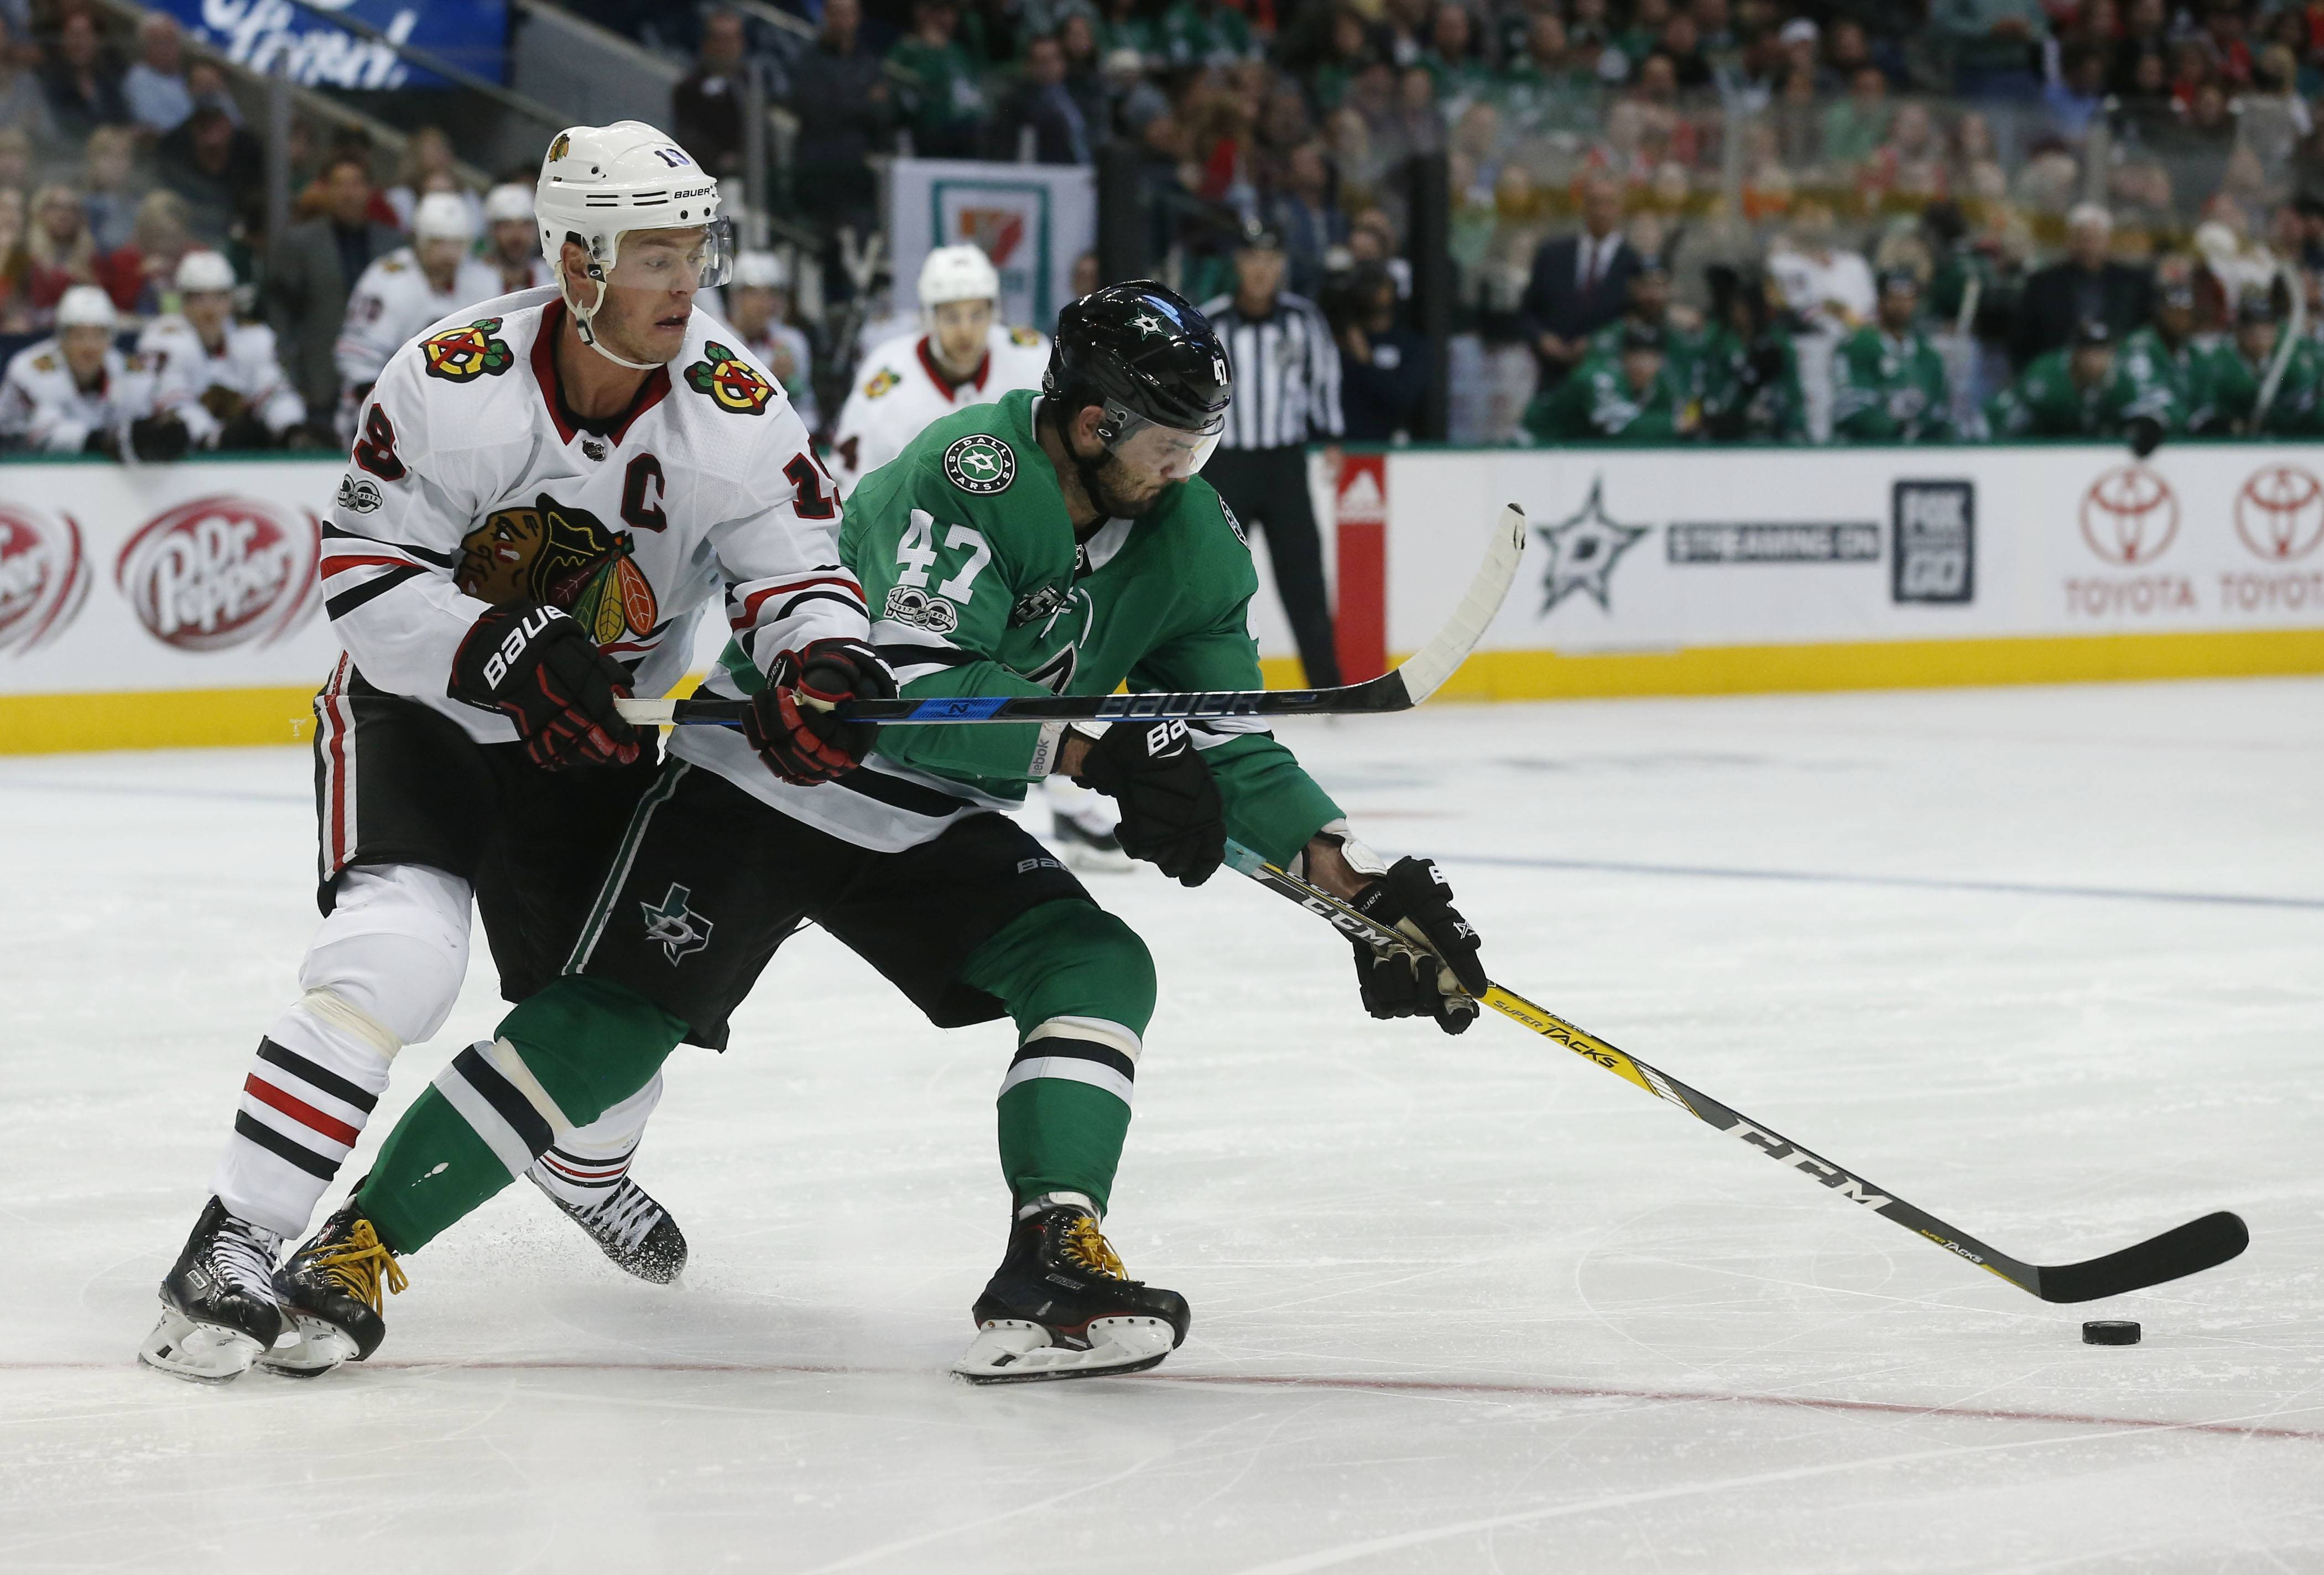 Chicago Blackhawks center Jonathan Toews (19) and Dallas Stars right wing Alexander Radulov (47) battle for the puck during the second period of an NHL hockey game, Saturday, Dec. 2, 2017, in Dallas.